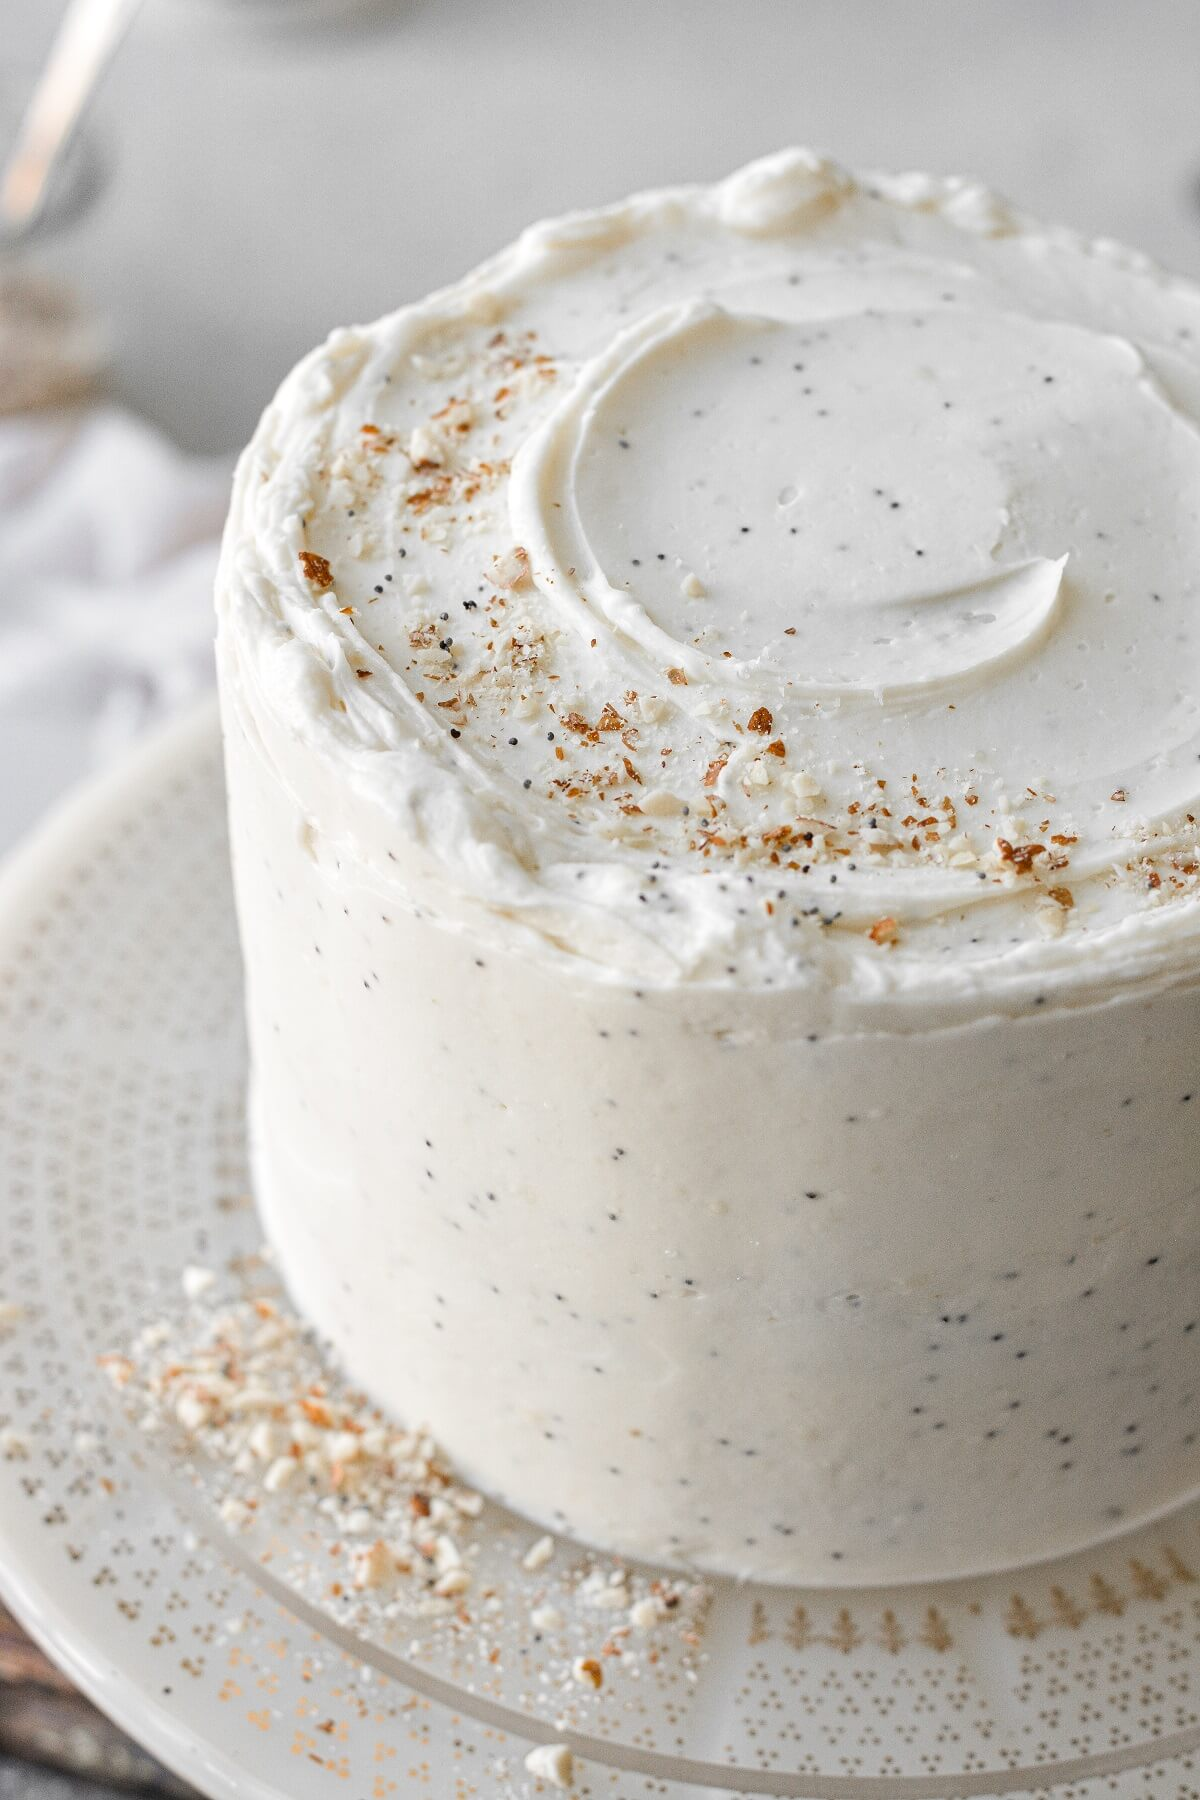 Almond poppyseed cake sprinkled with crushed almonds.